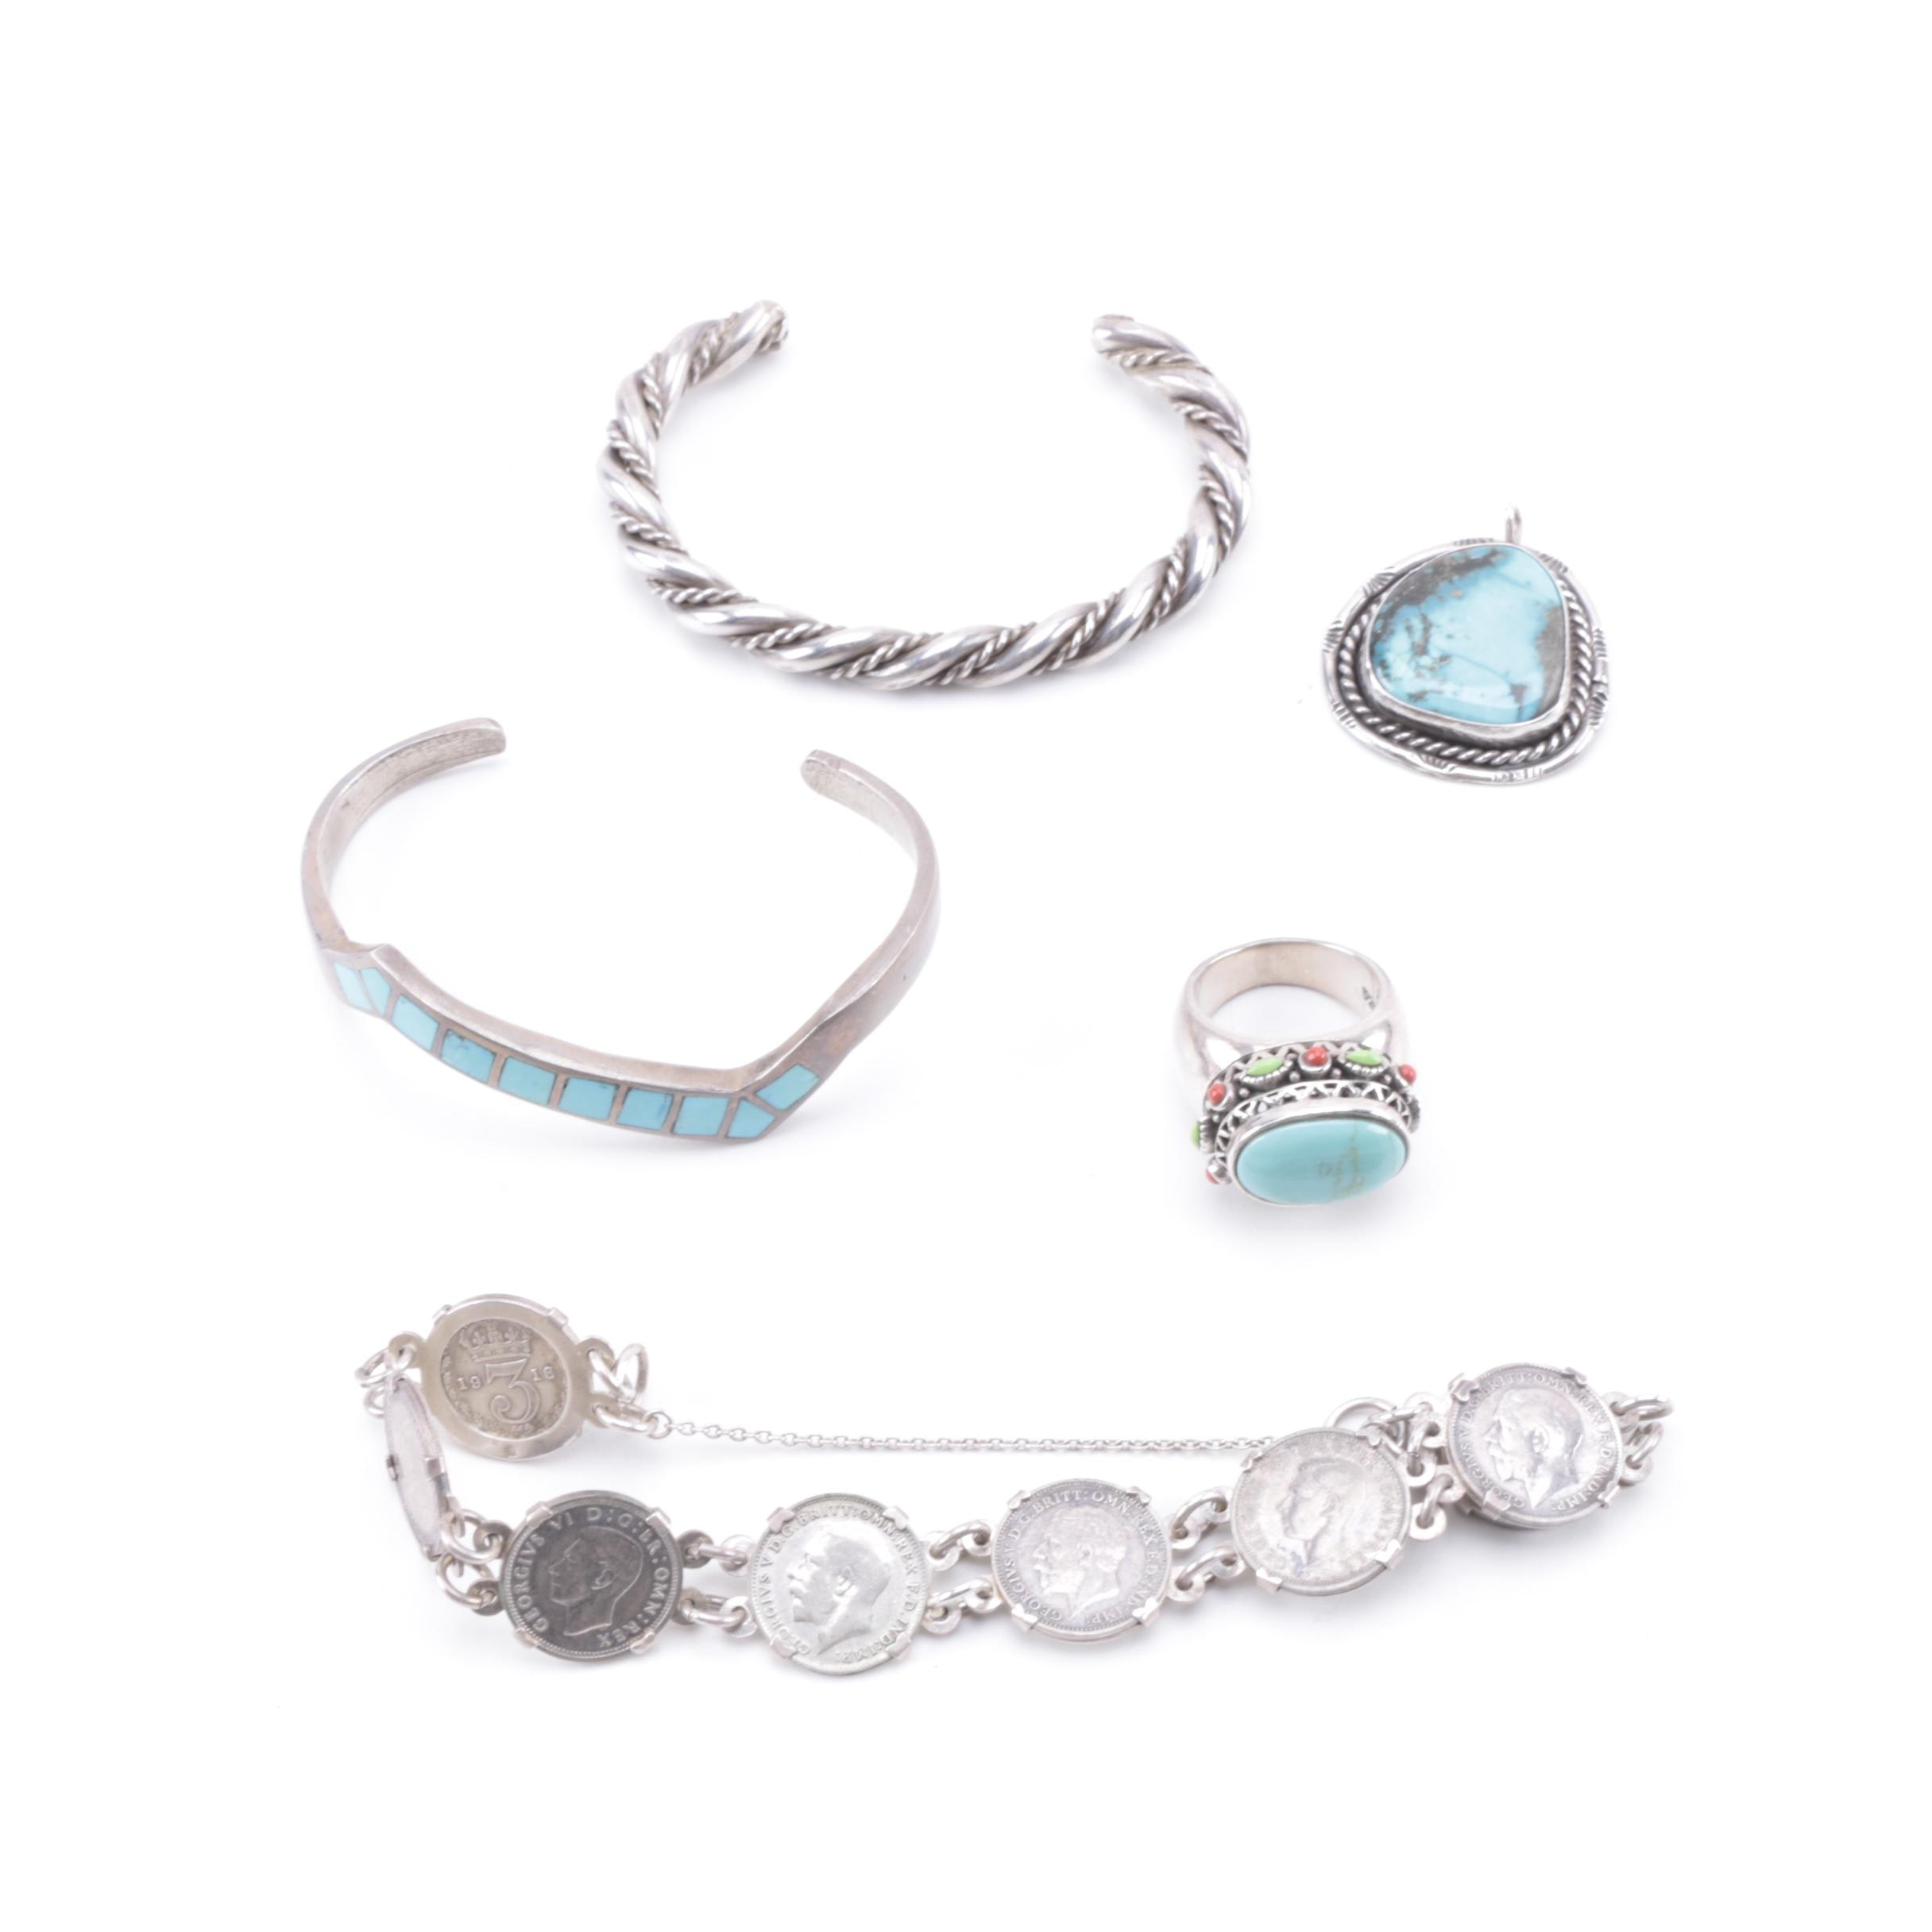 Collection of Sterling Silver Jewelry Featuring Turquoise and More